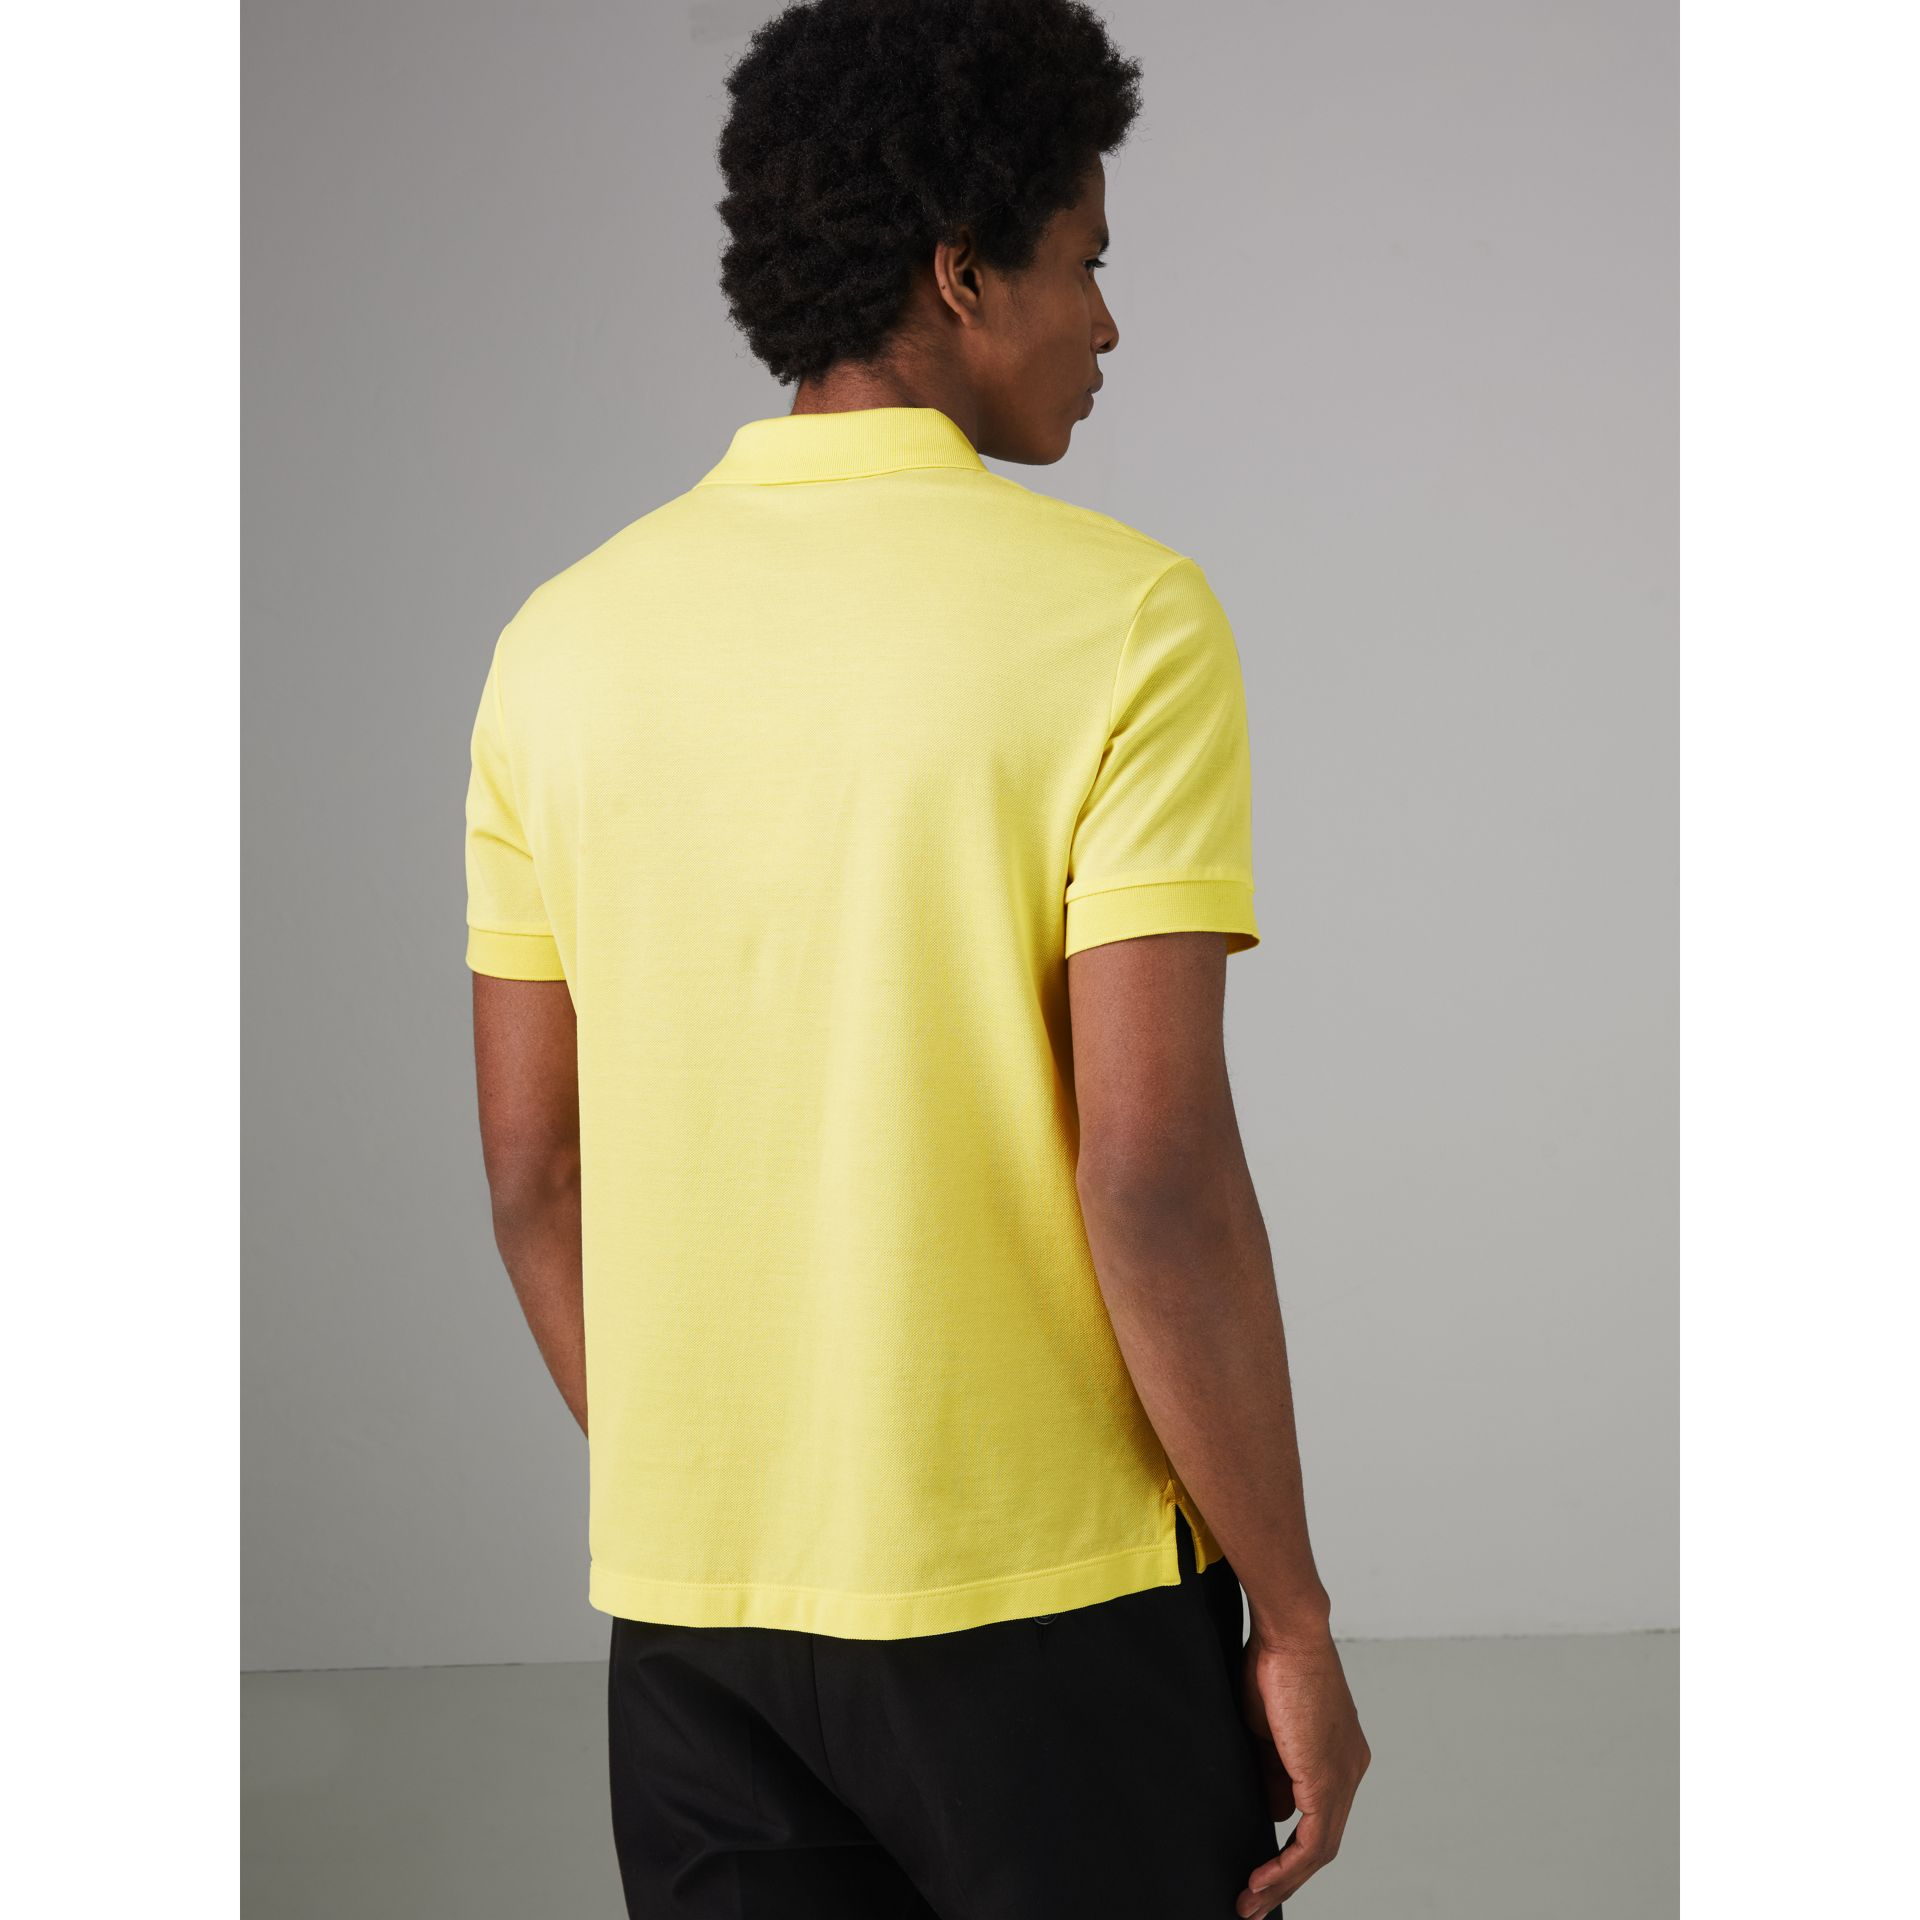 Painted Button Cotton Piqué Polo Shirt in Vibrant Lemon - Men | Burberry United Kingdom - gallery image 2